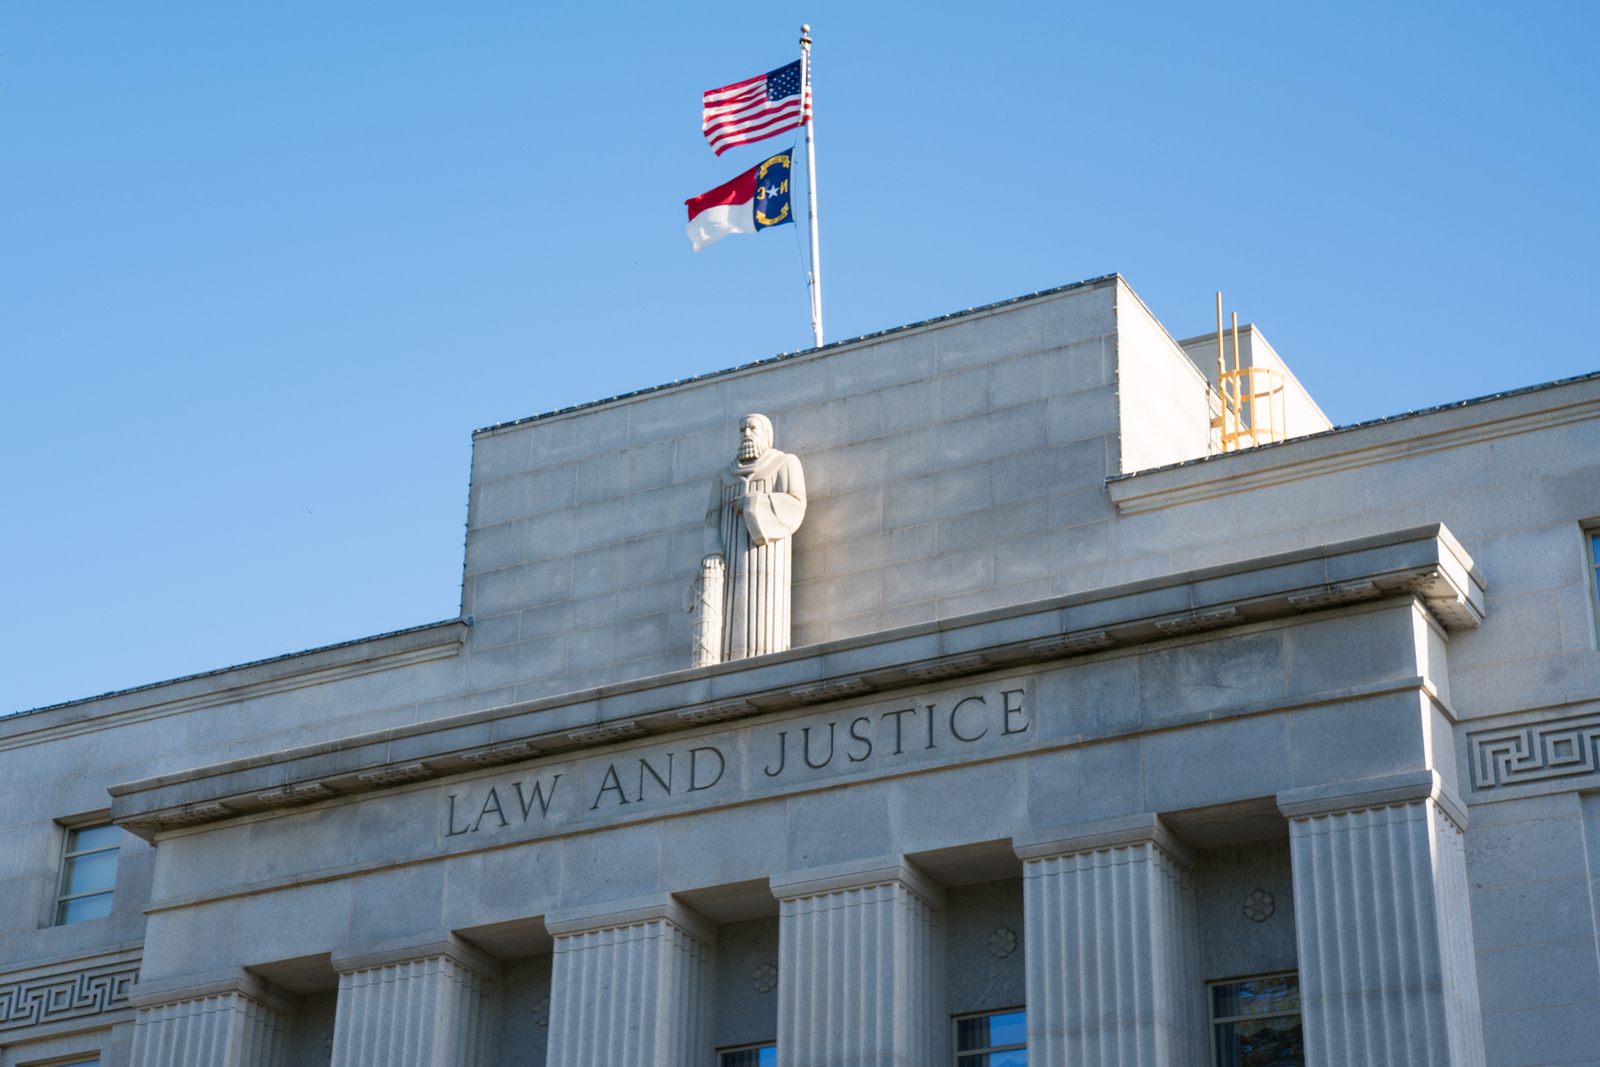 : https://www.deweybrinkleylaw.com/uncategorized/raleigh-dui-attorney/